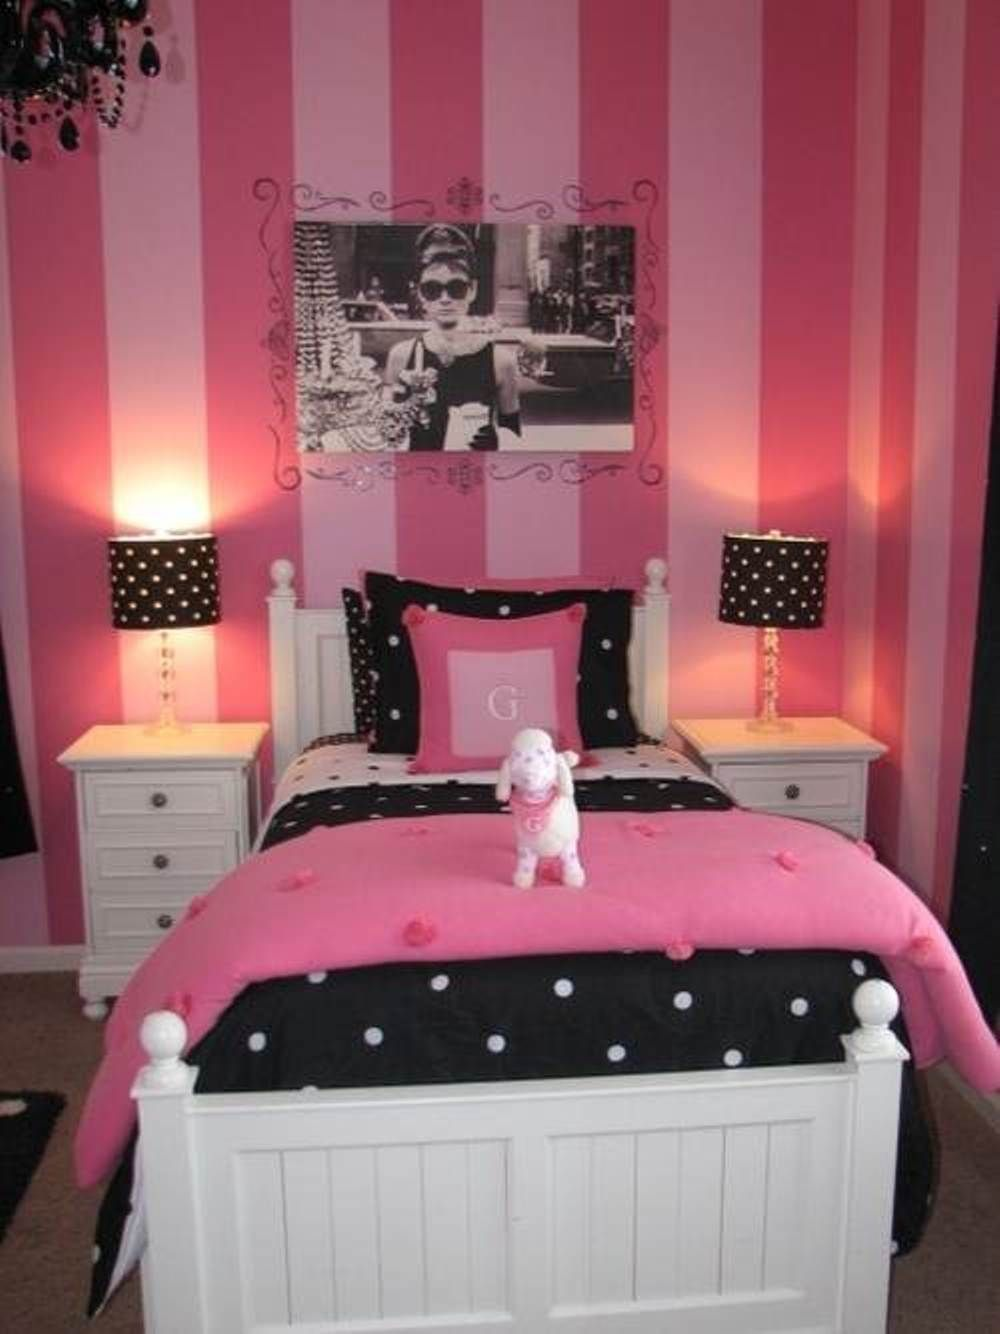 78 best images about painting ideas for the bedroom on pinterest